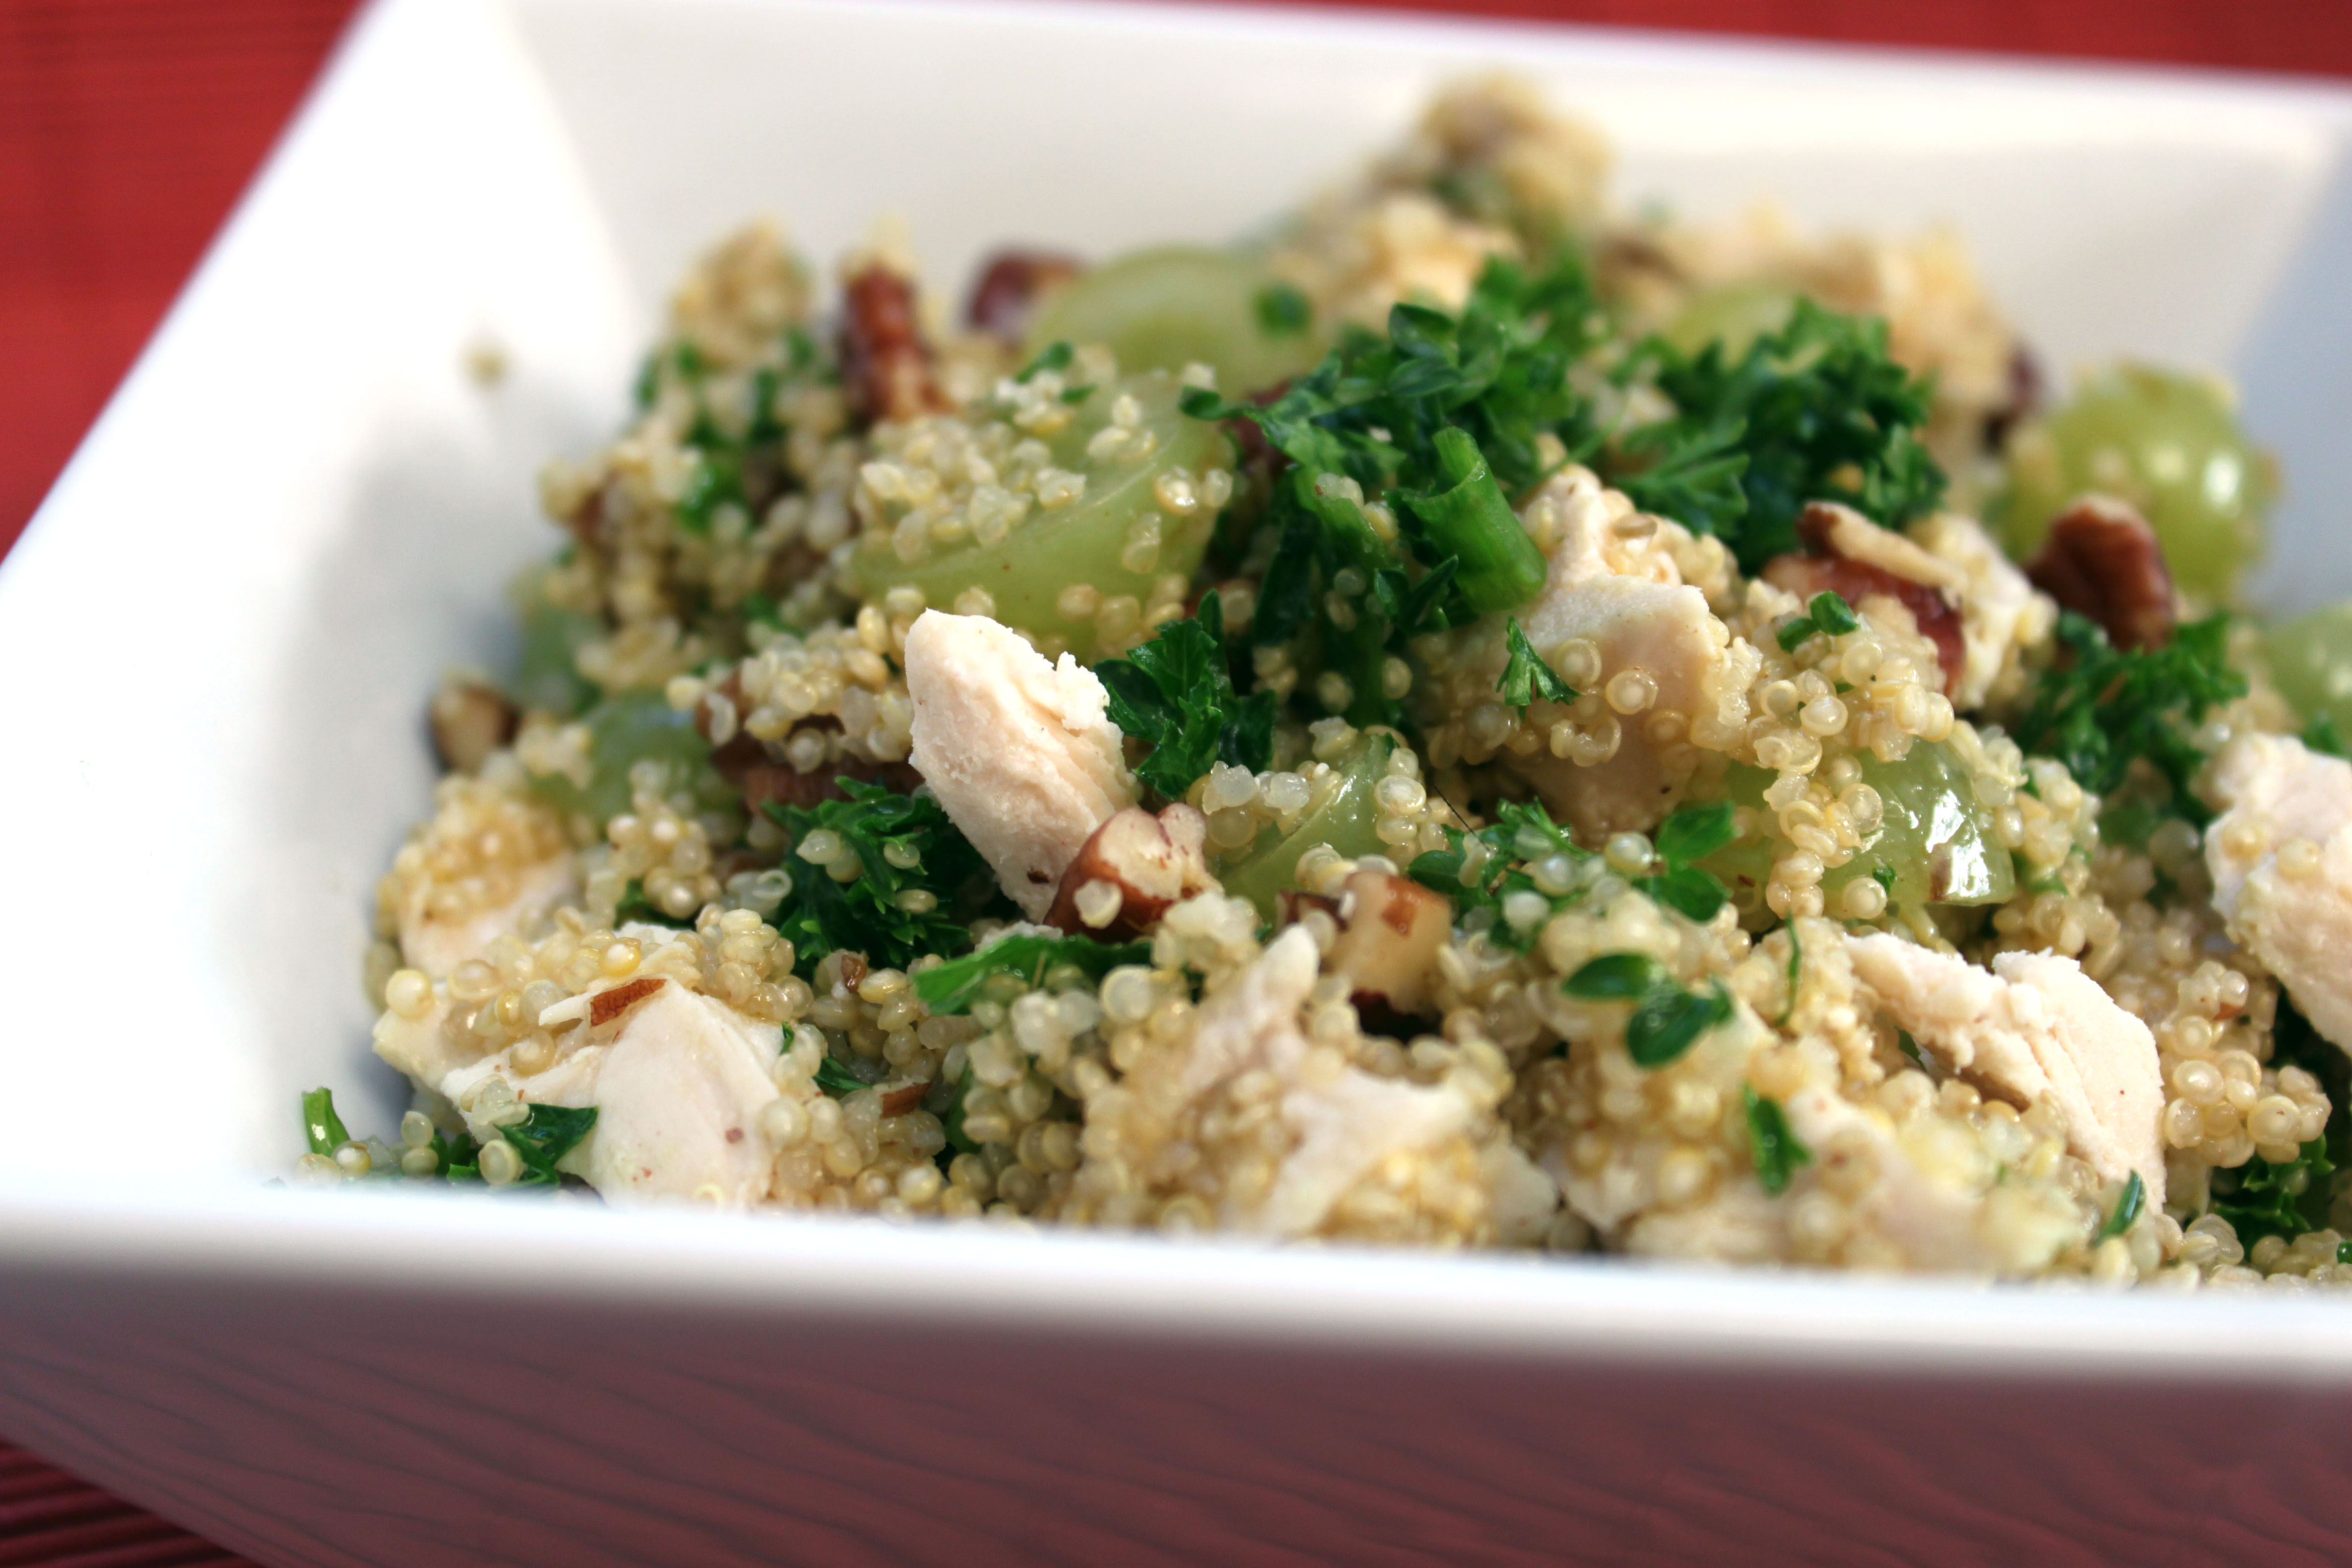 Healthy Chicken and Quinoa Salad - Kris M Beal | The Heart & Humor of ...